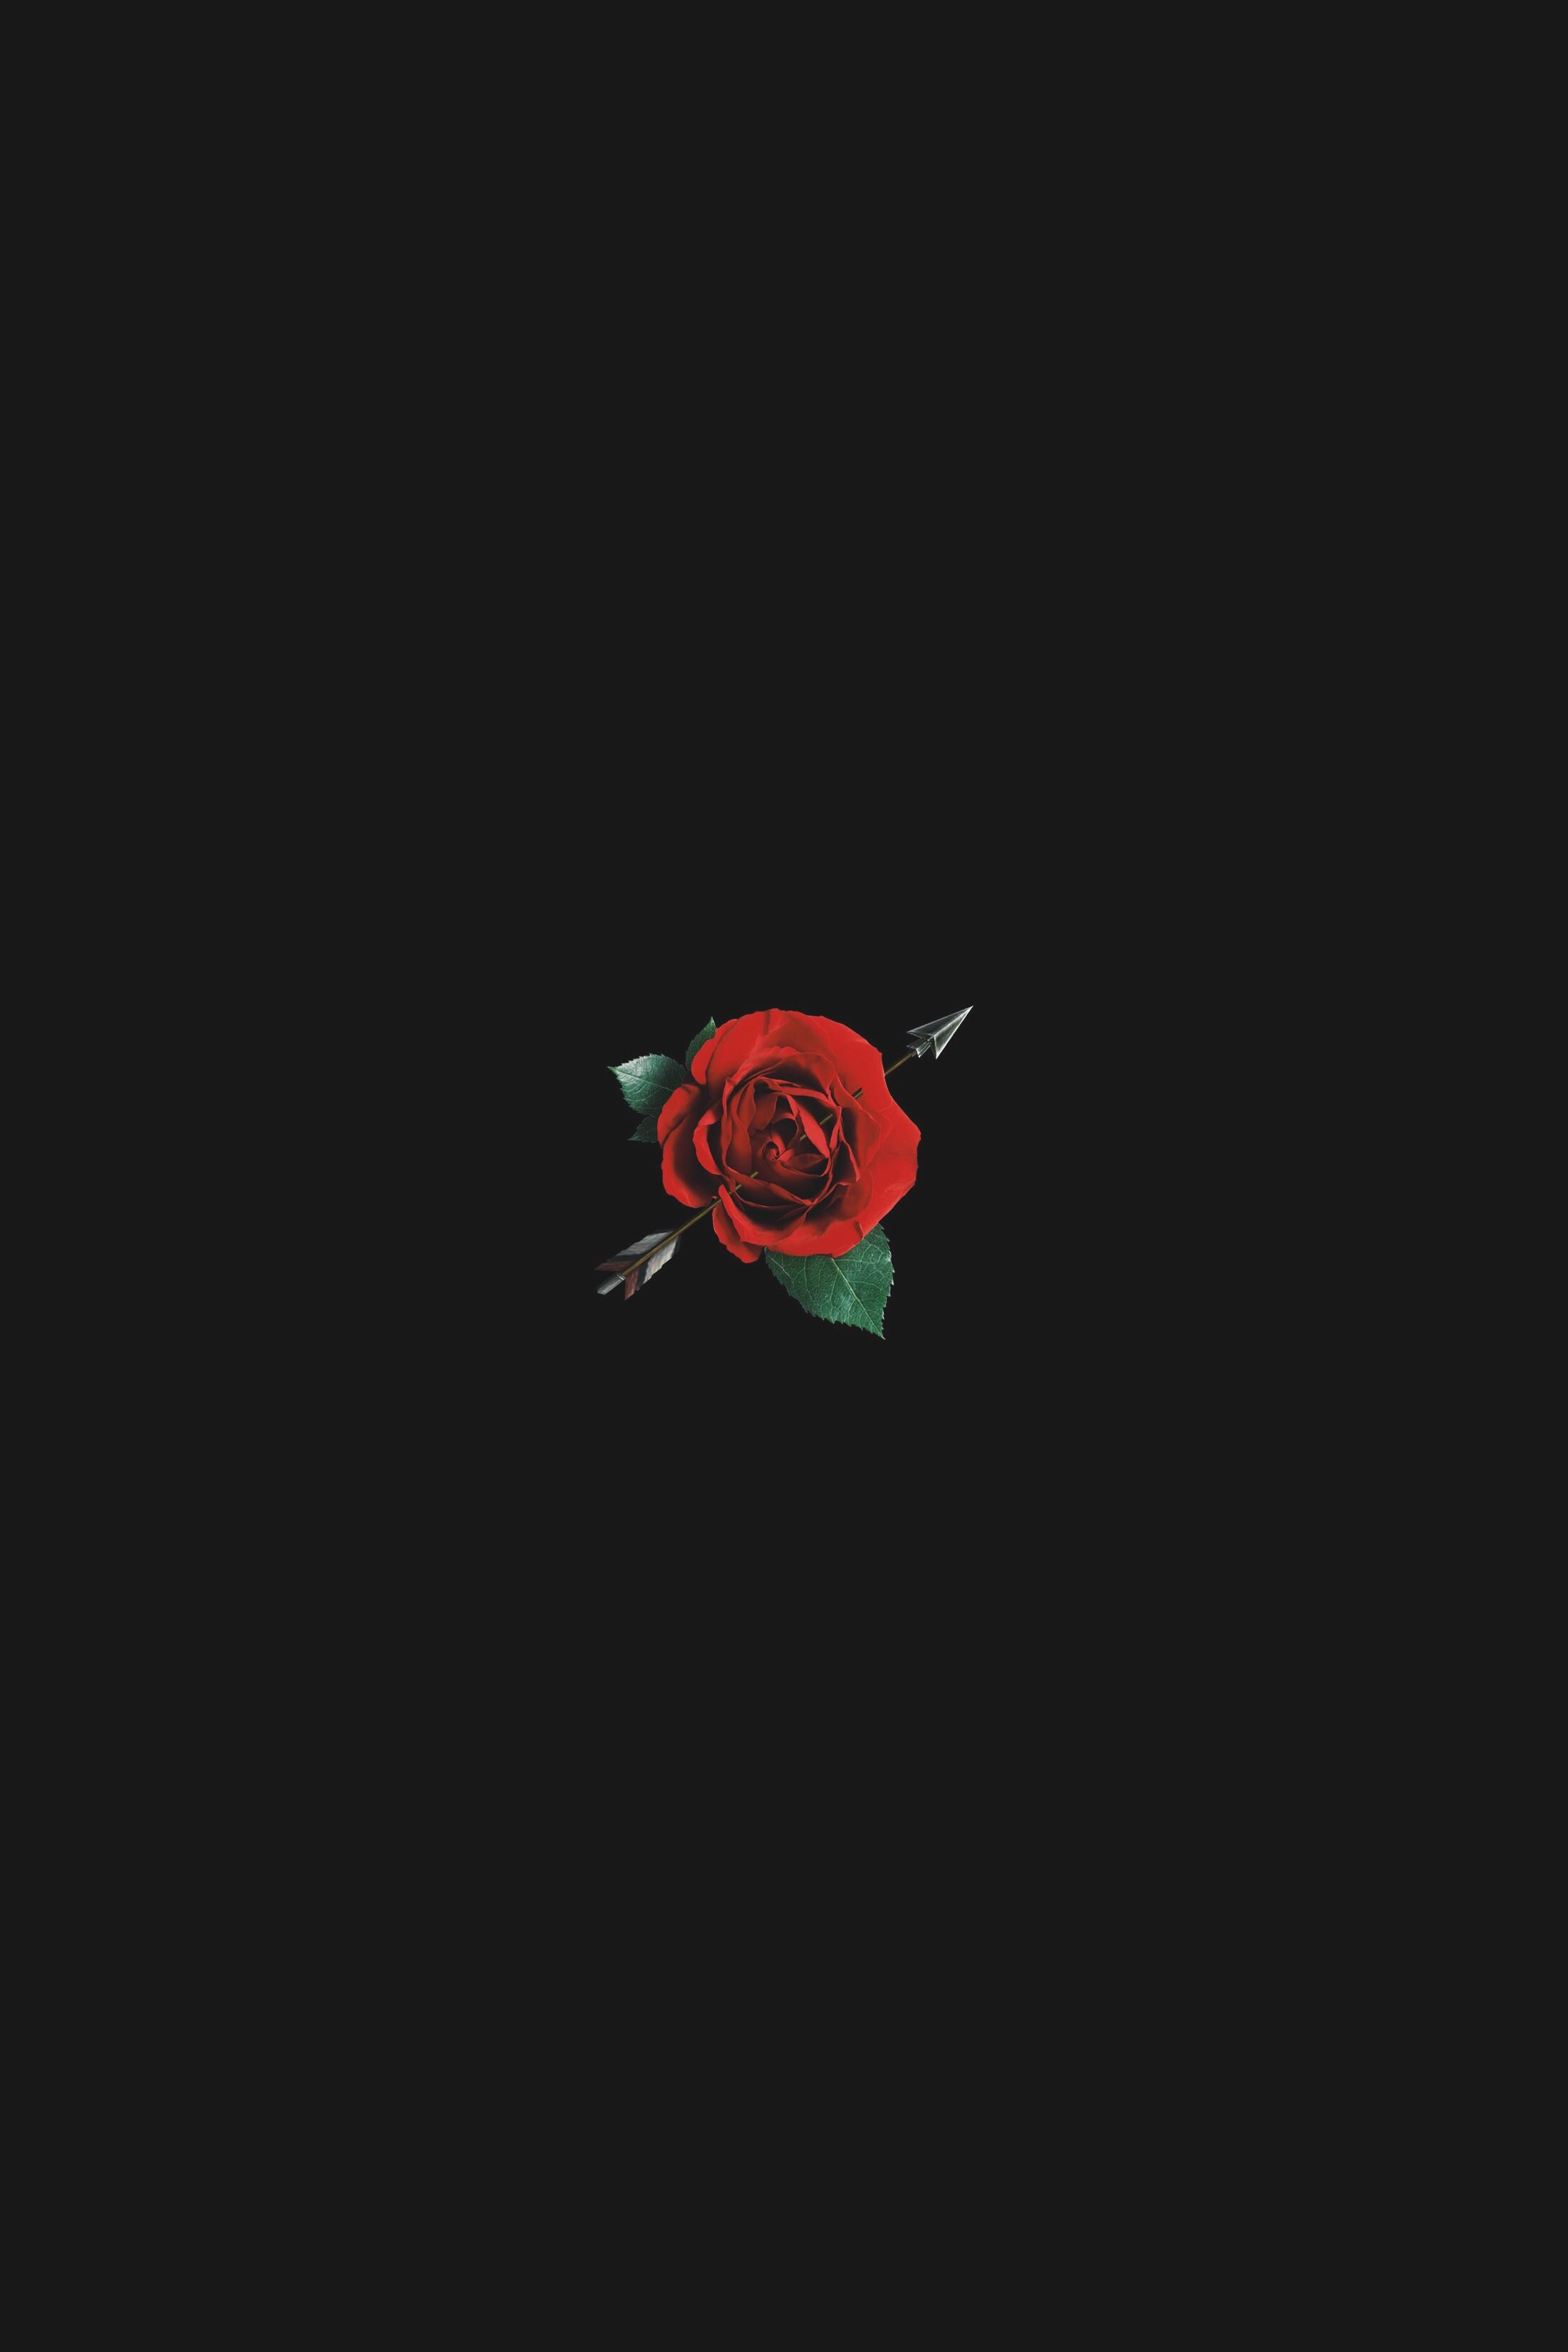 Red Rose Amoled Avermusic Instagram Avermusic Black Phone